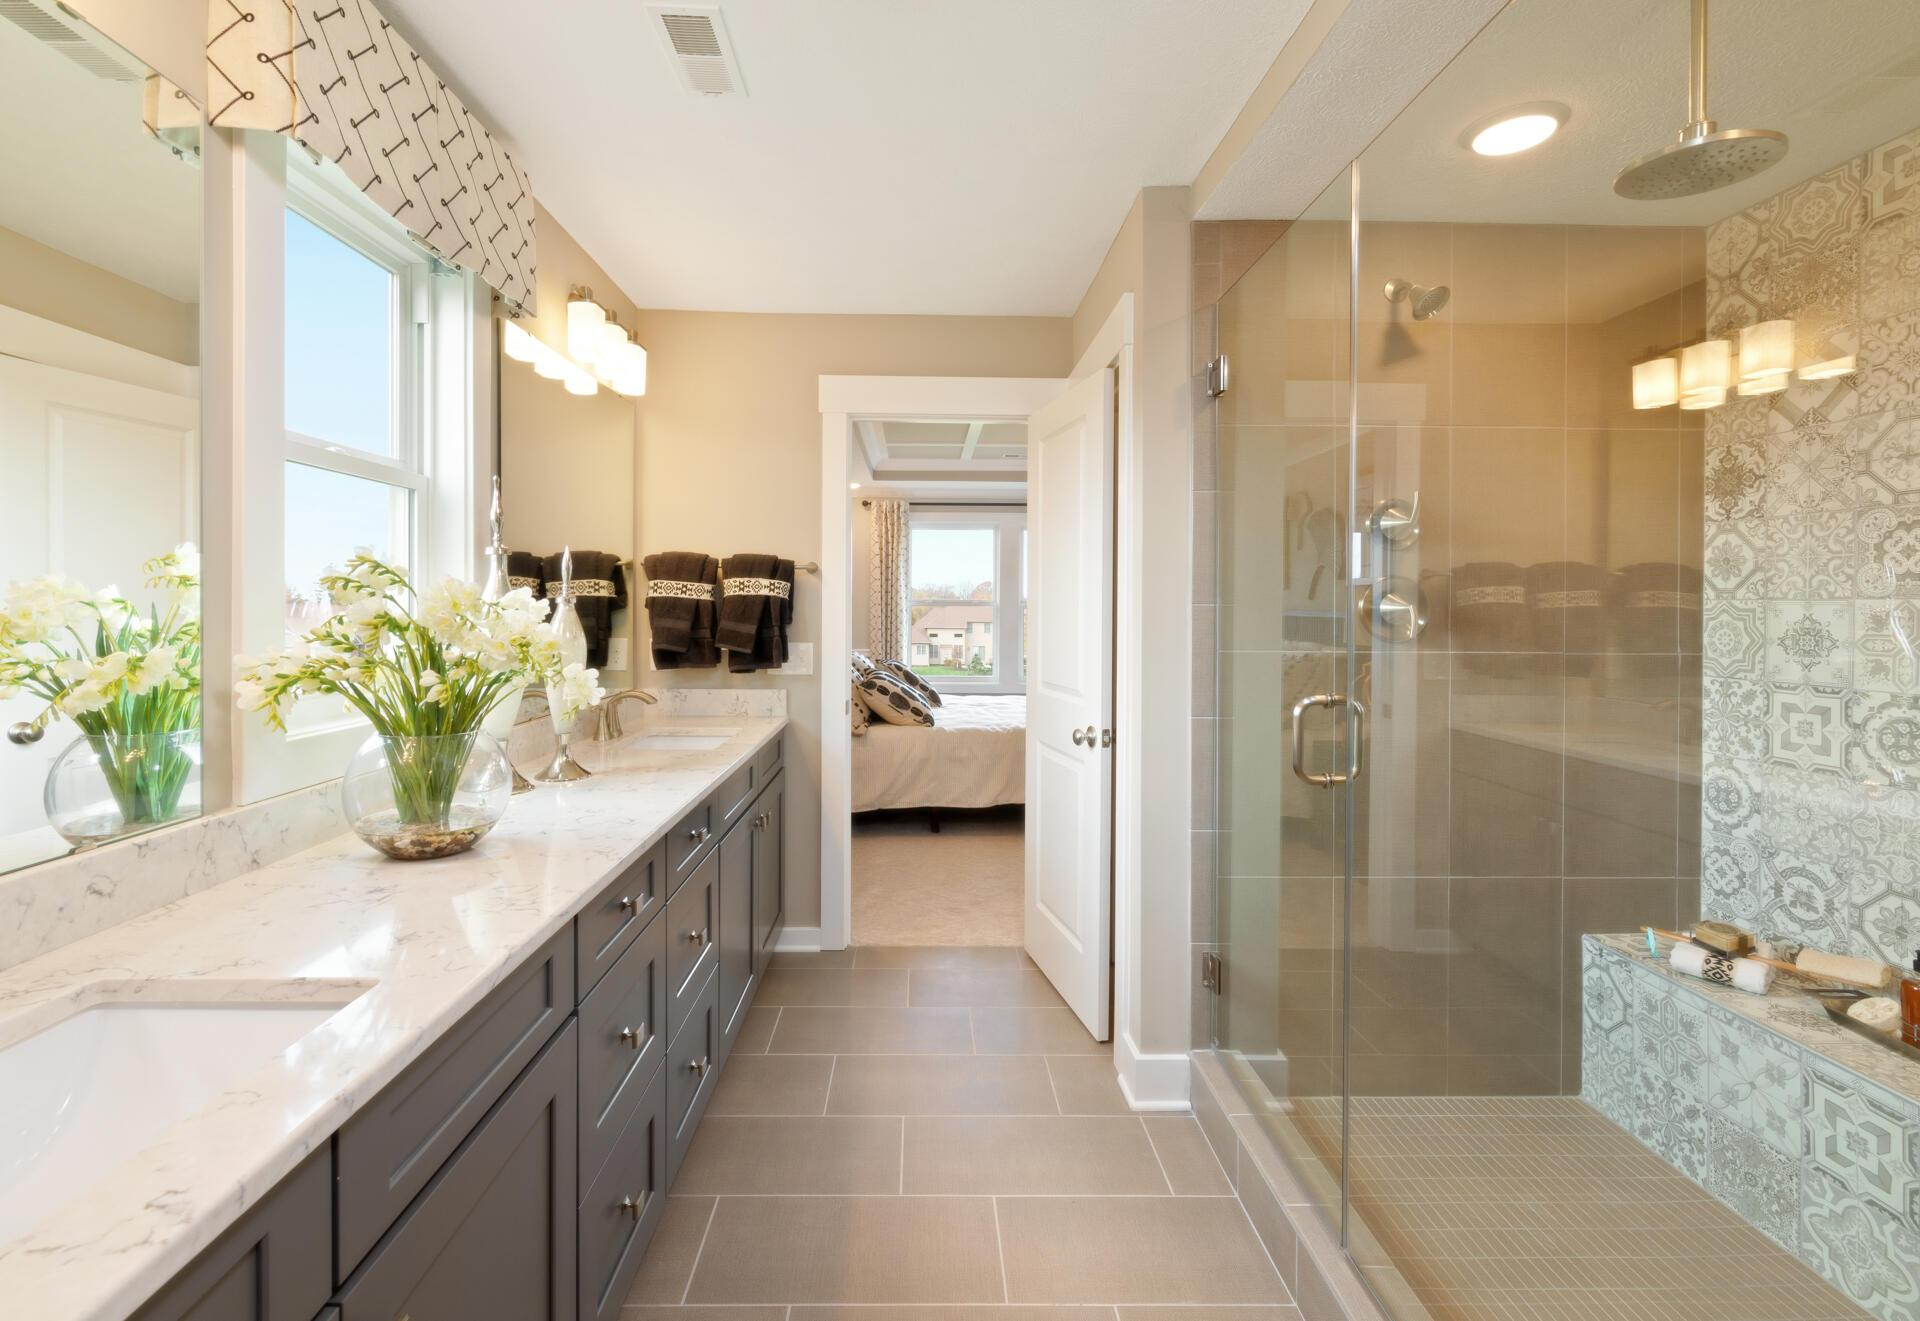 Bathroom featured in the Belleville By Drees Homes in Cleveland, OH